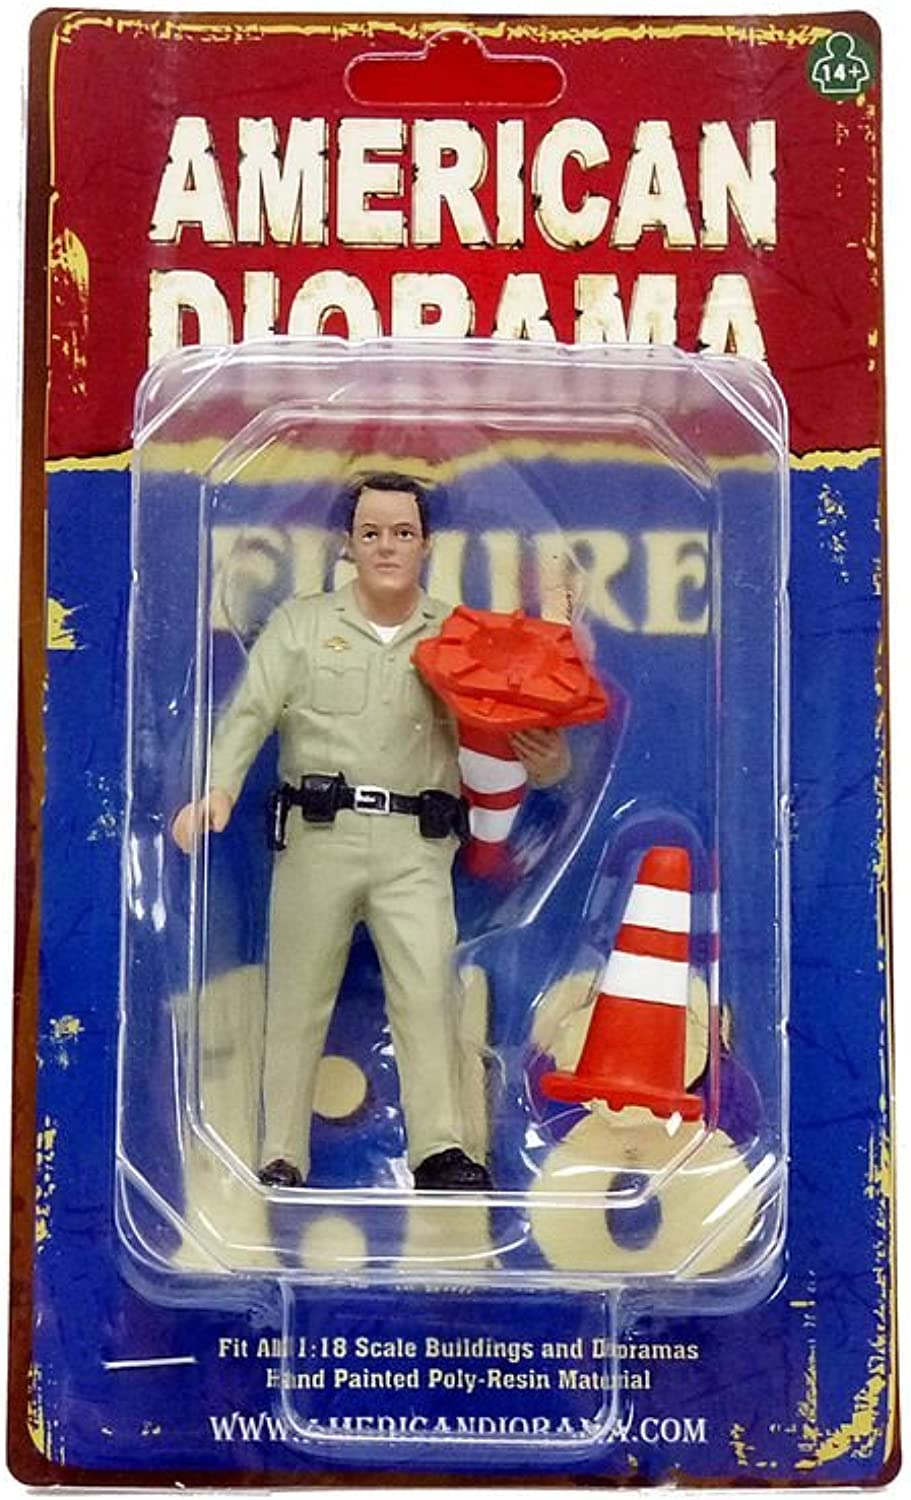 American Diorama 77464 Highway Patrol Officer Collecting Cones Figurine for 1 isto 18 Models